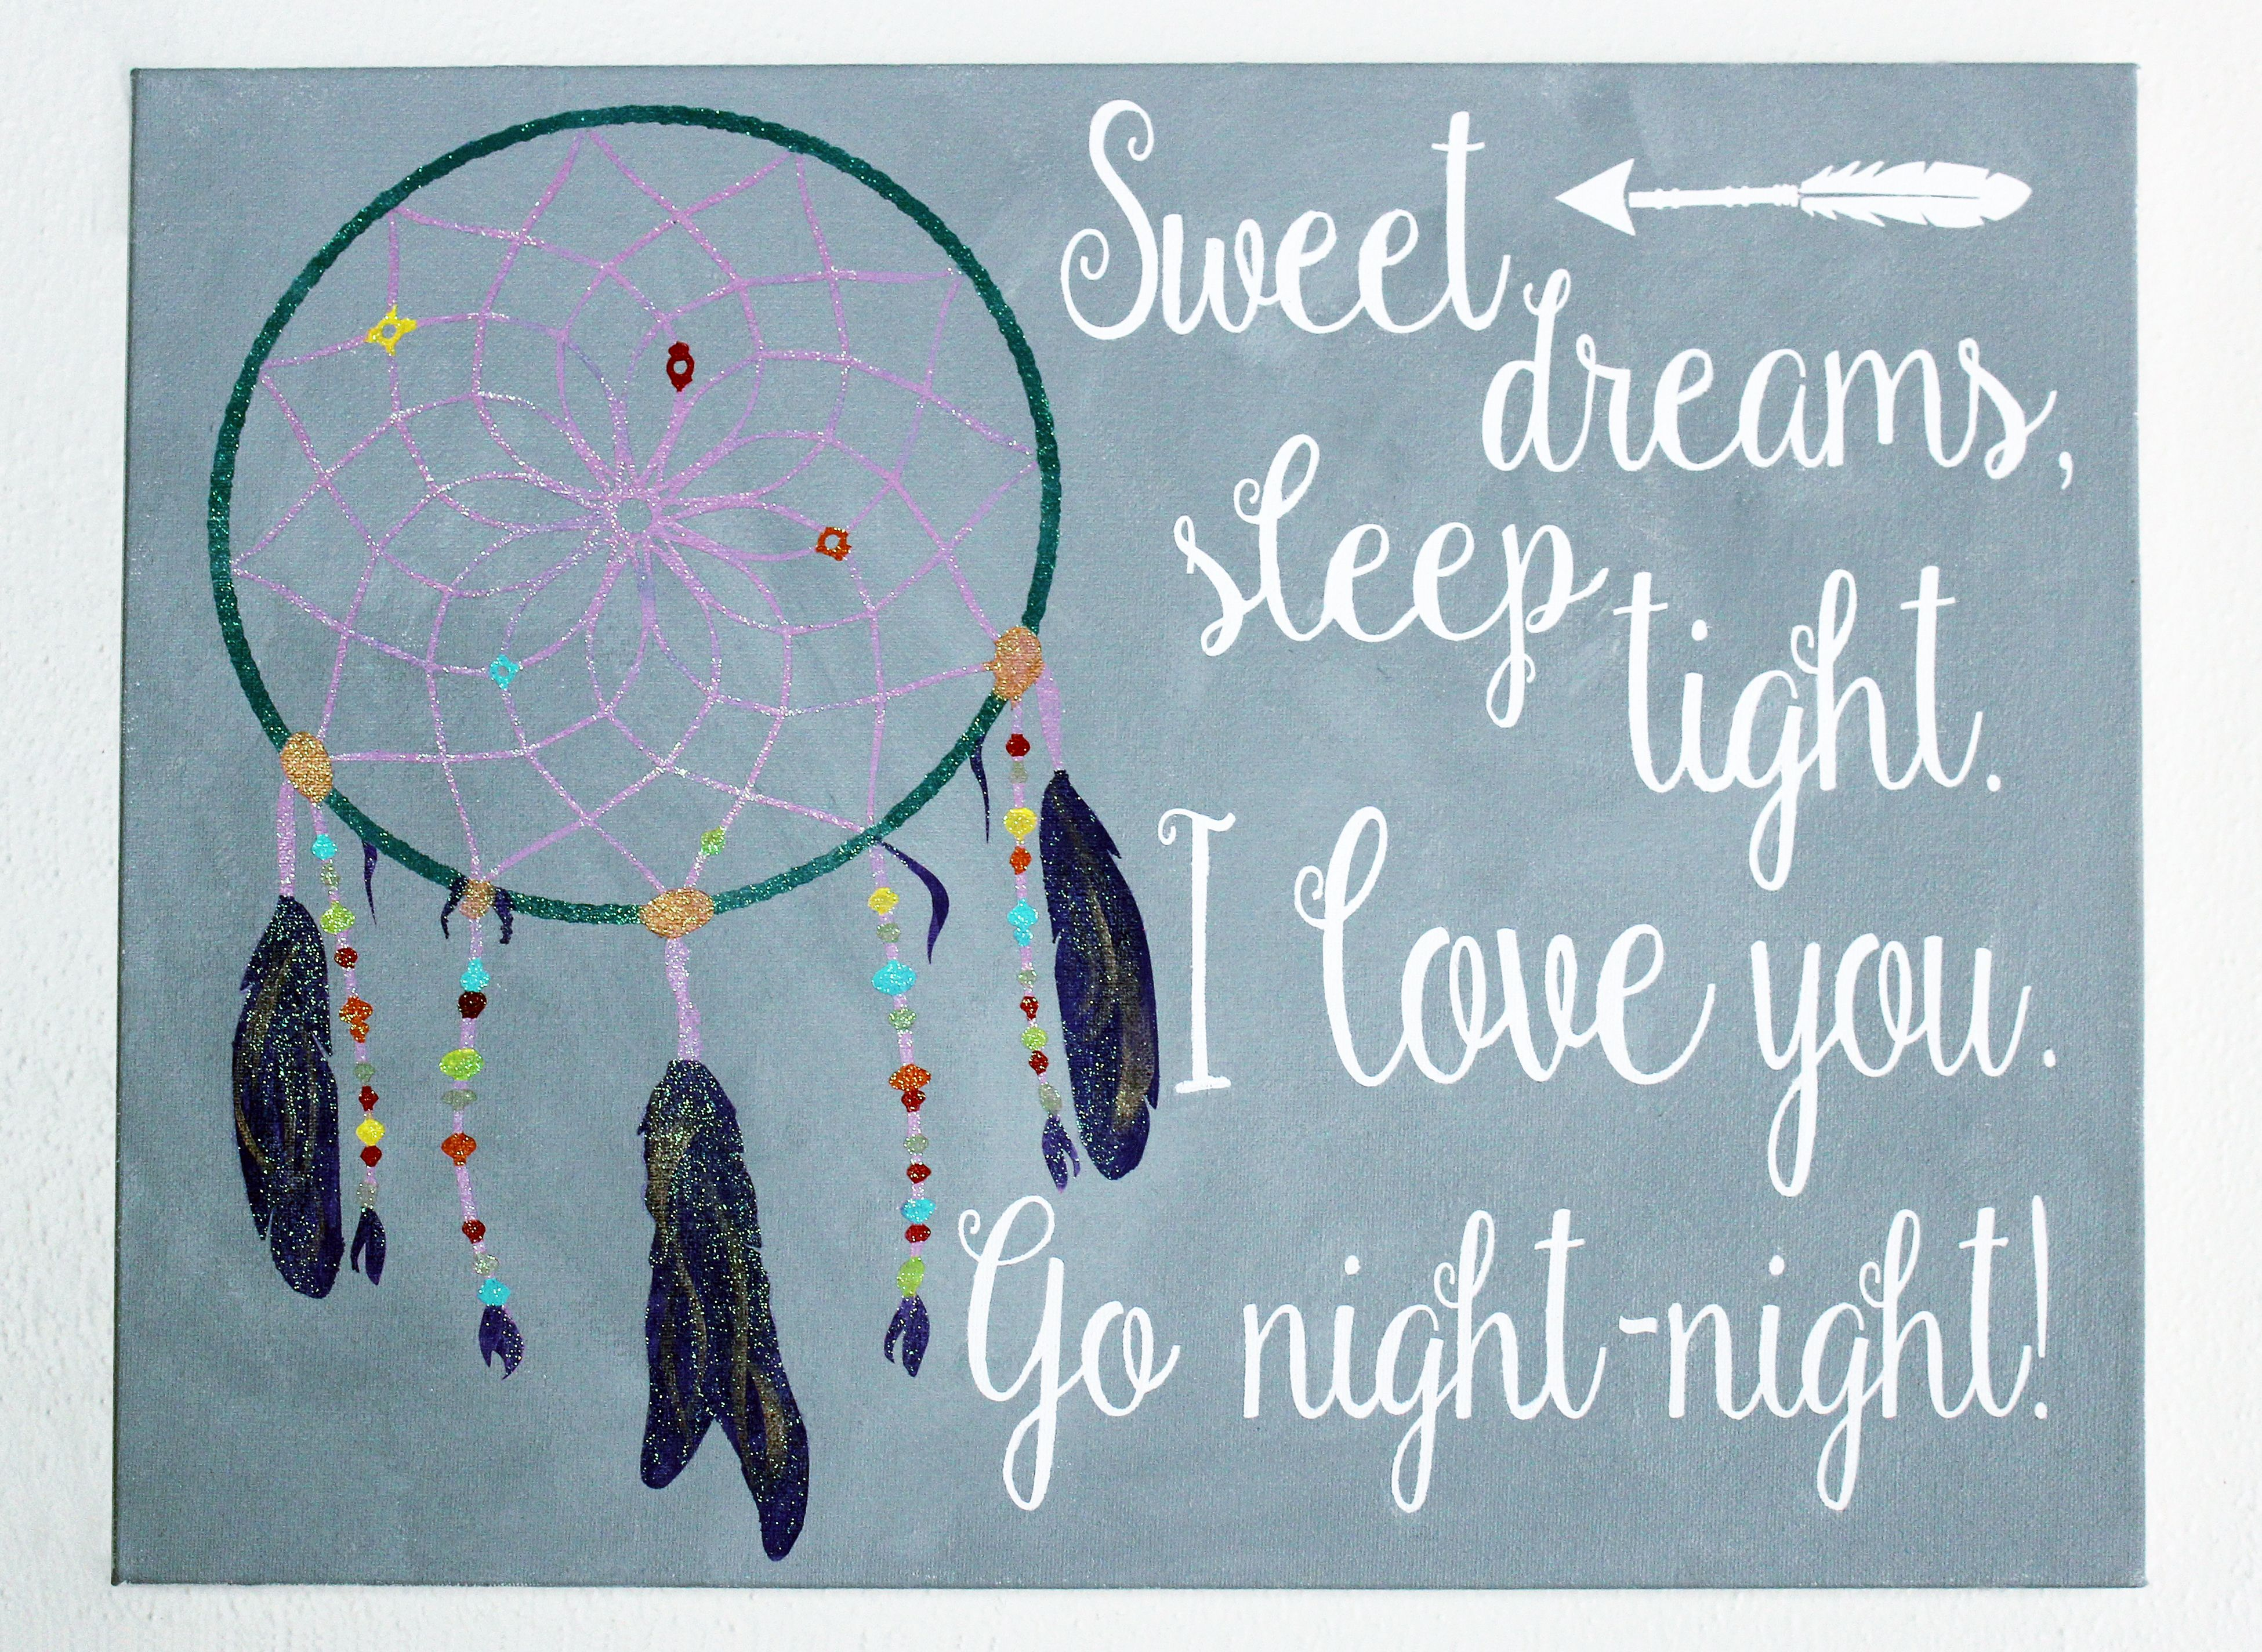 Dream catchers help assure sweet dreams and are popular as